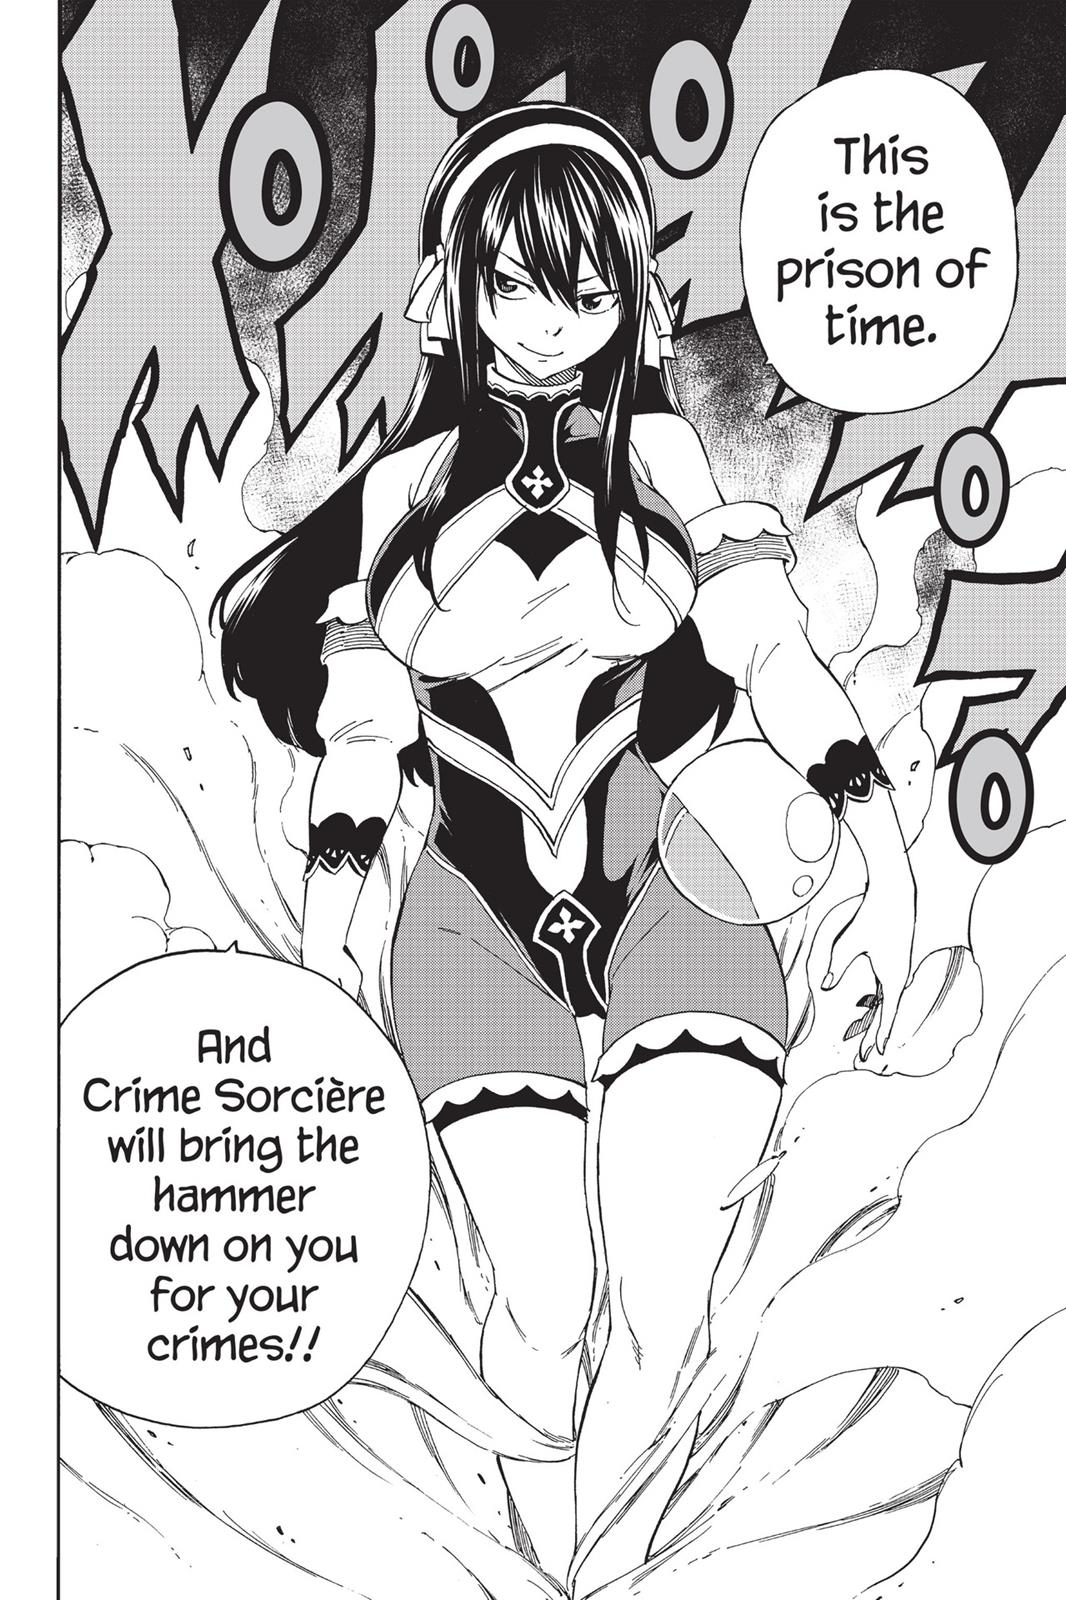 Fairy Tail chapter 474 - Ultear Milkovich, the time traveller